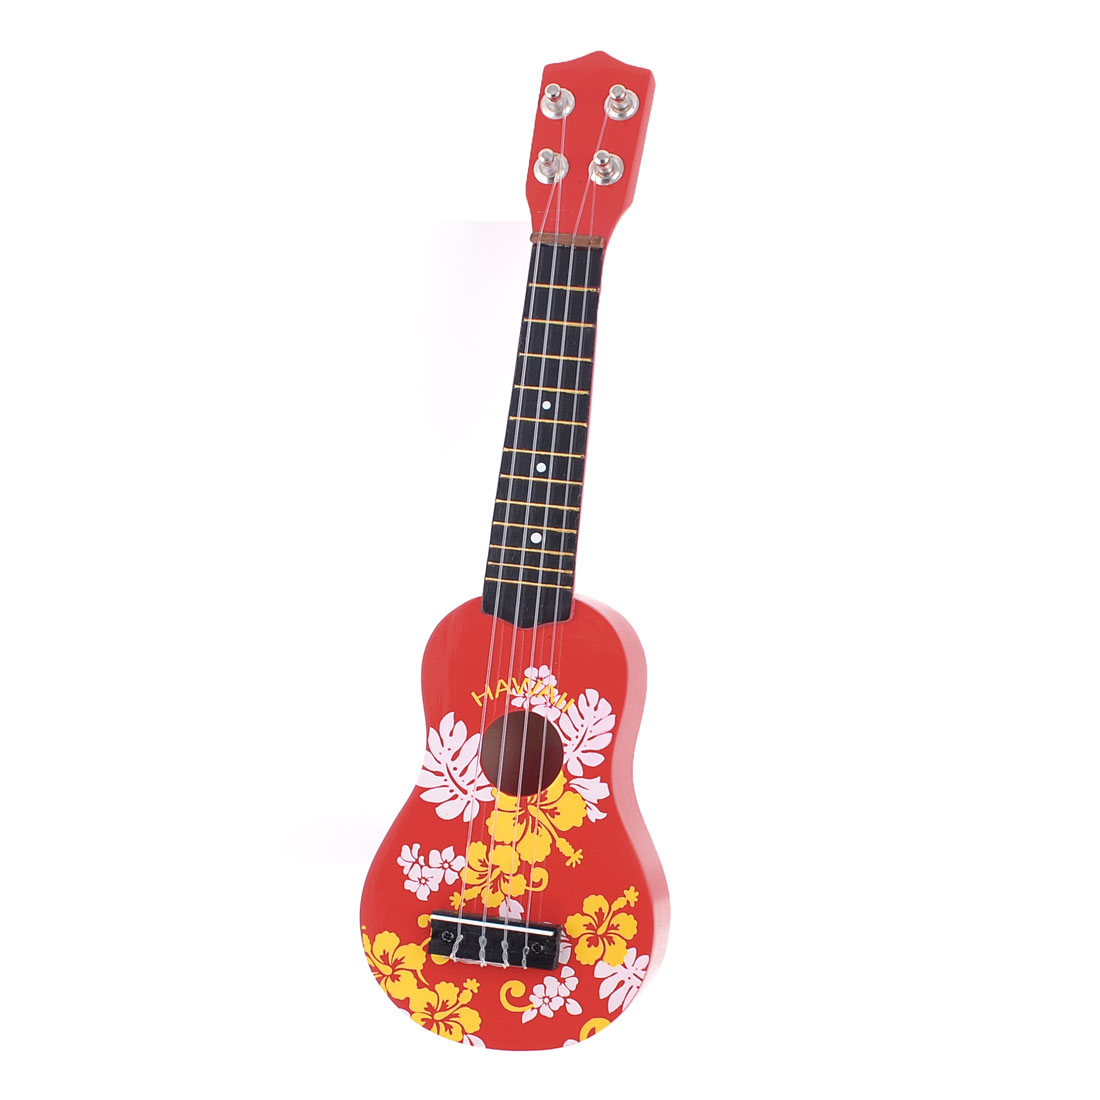 Kids Wooden Hollow Body 4 Plastic String Acoustic Instrument Guitar Toy Red